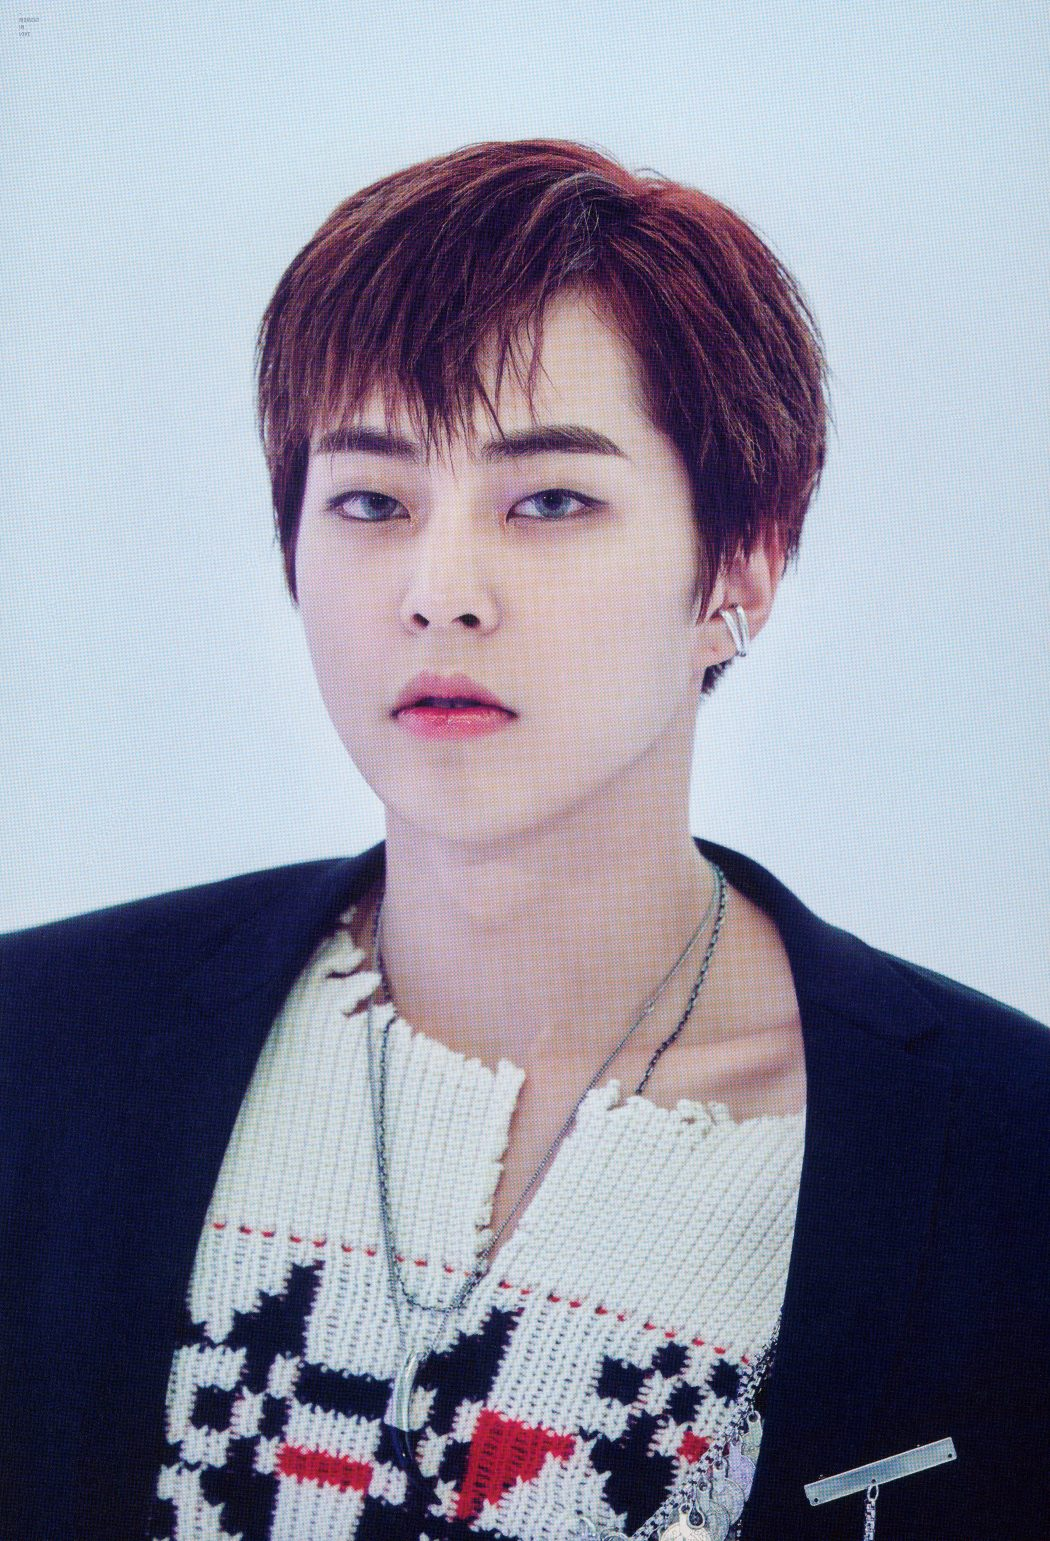 Exo Images Xiumin Love Shot Hd Wallpaper And Background Photos